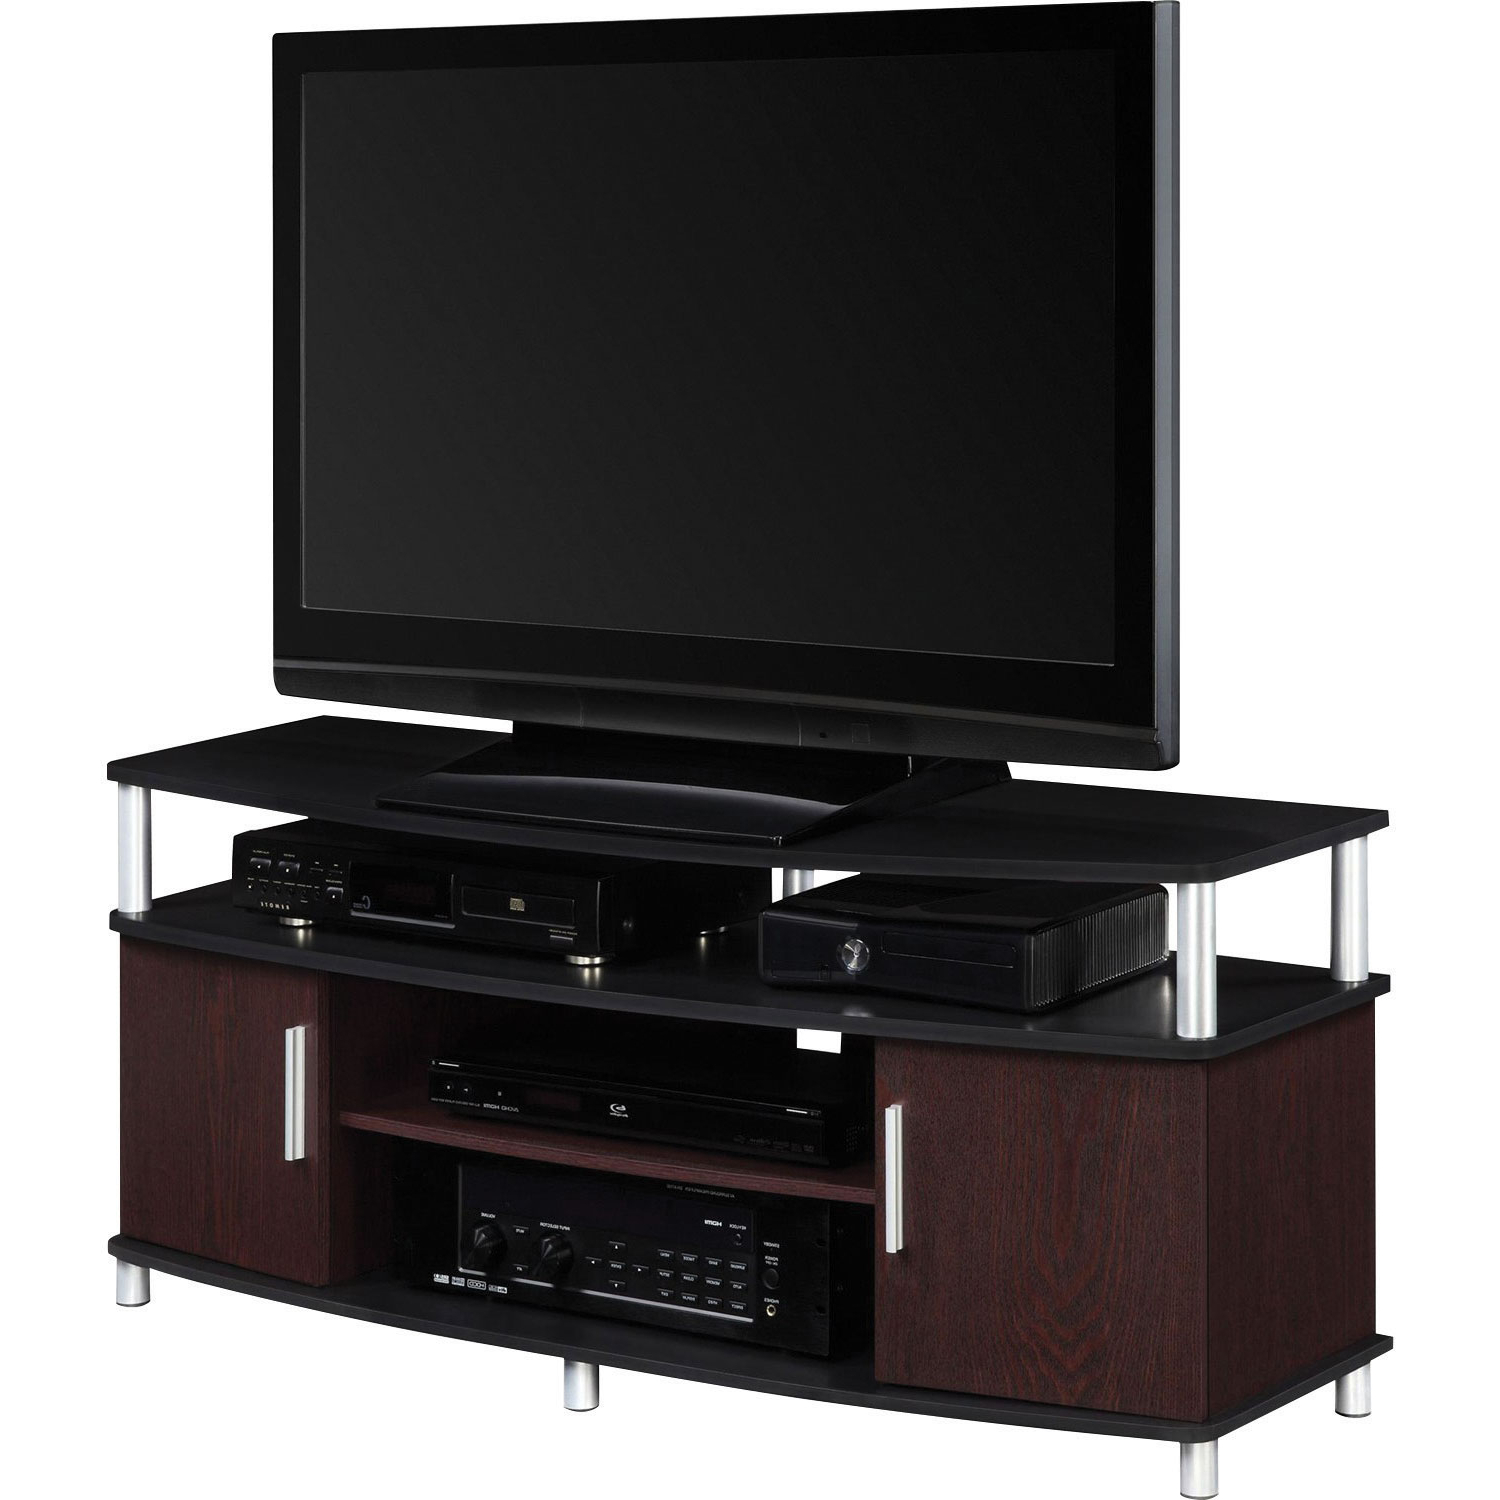 "2017 Dorel Carson 50"" Tv Stand – Cherry/black : Tv Stands – Best Buy Canada In Cherry Tv Stands (Gallery 11 of 20)"